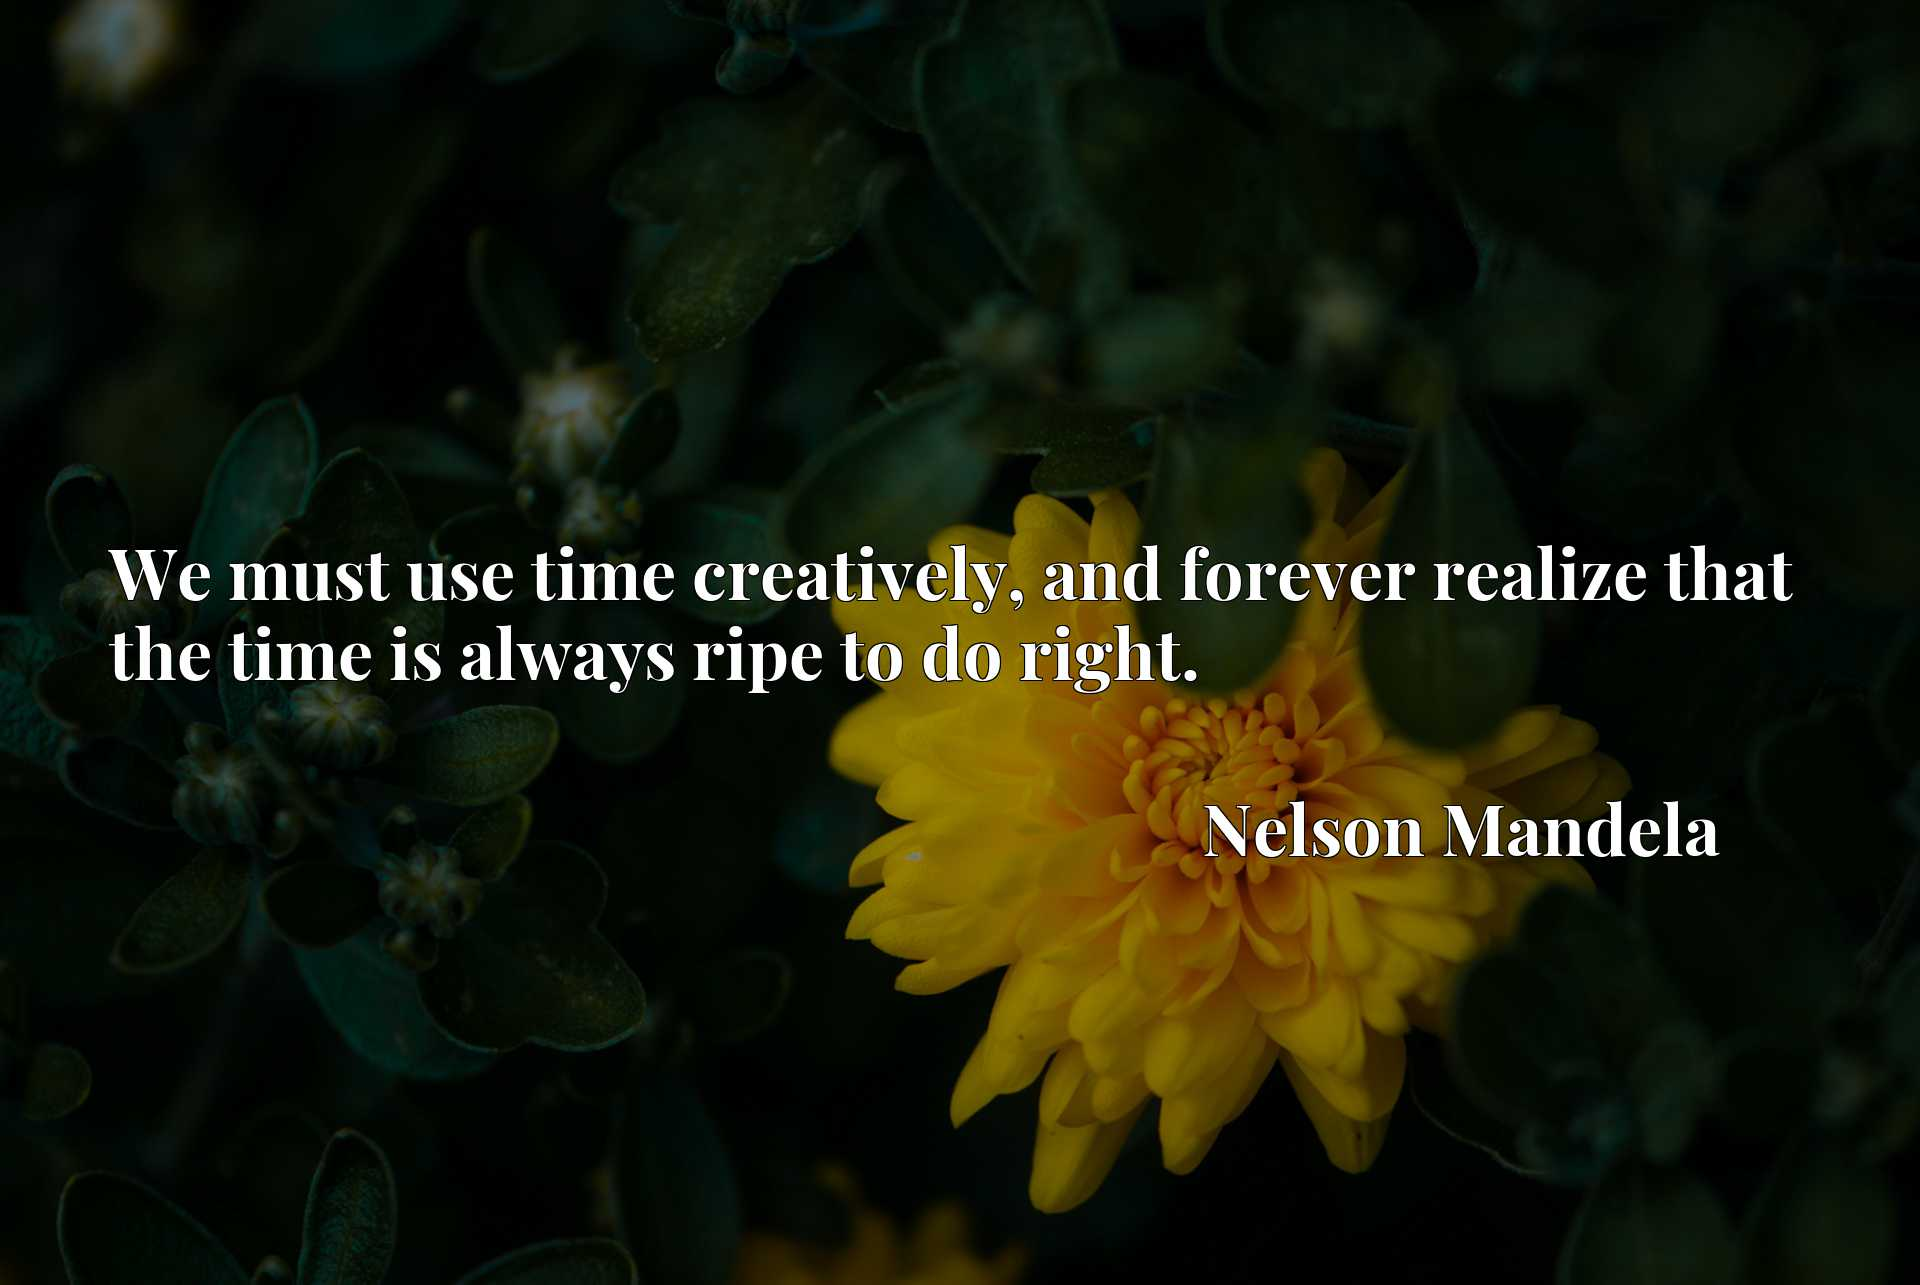 We must use time creatively, and forever realize that the time is always ripe to do right.